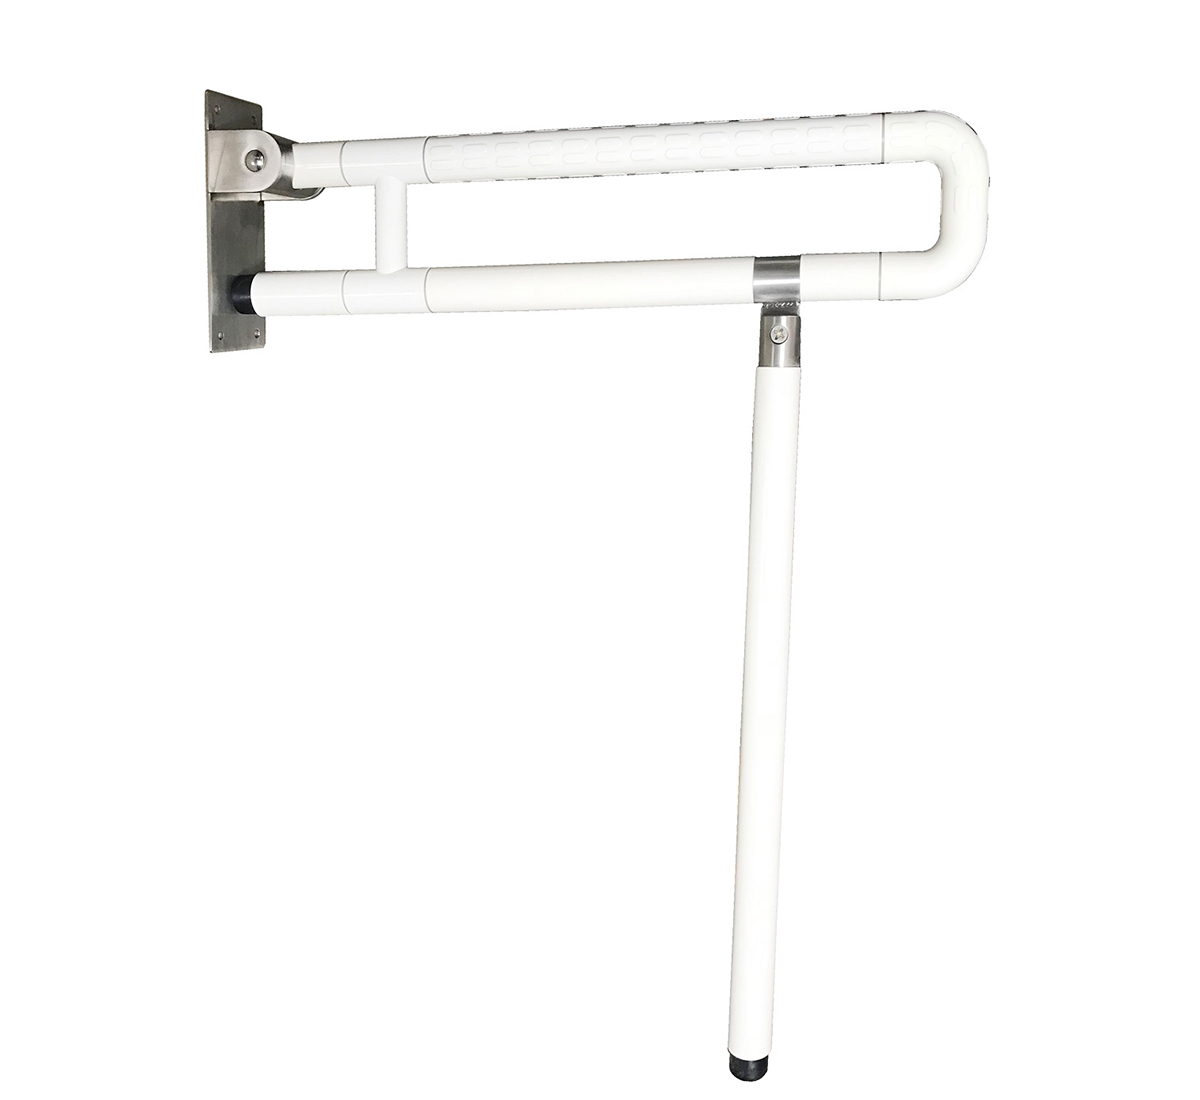 304 SS TUBE COATED WITH NYLON FOLDABLE WC HANDICAP GRAB BAR